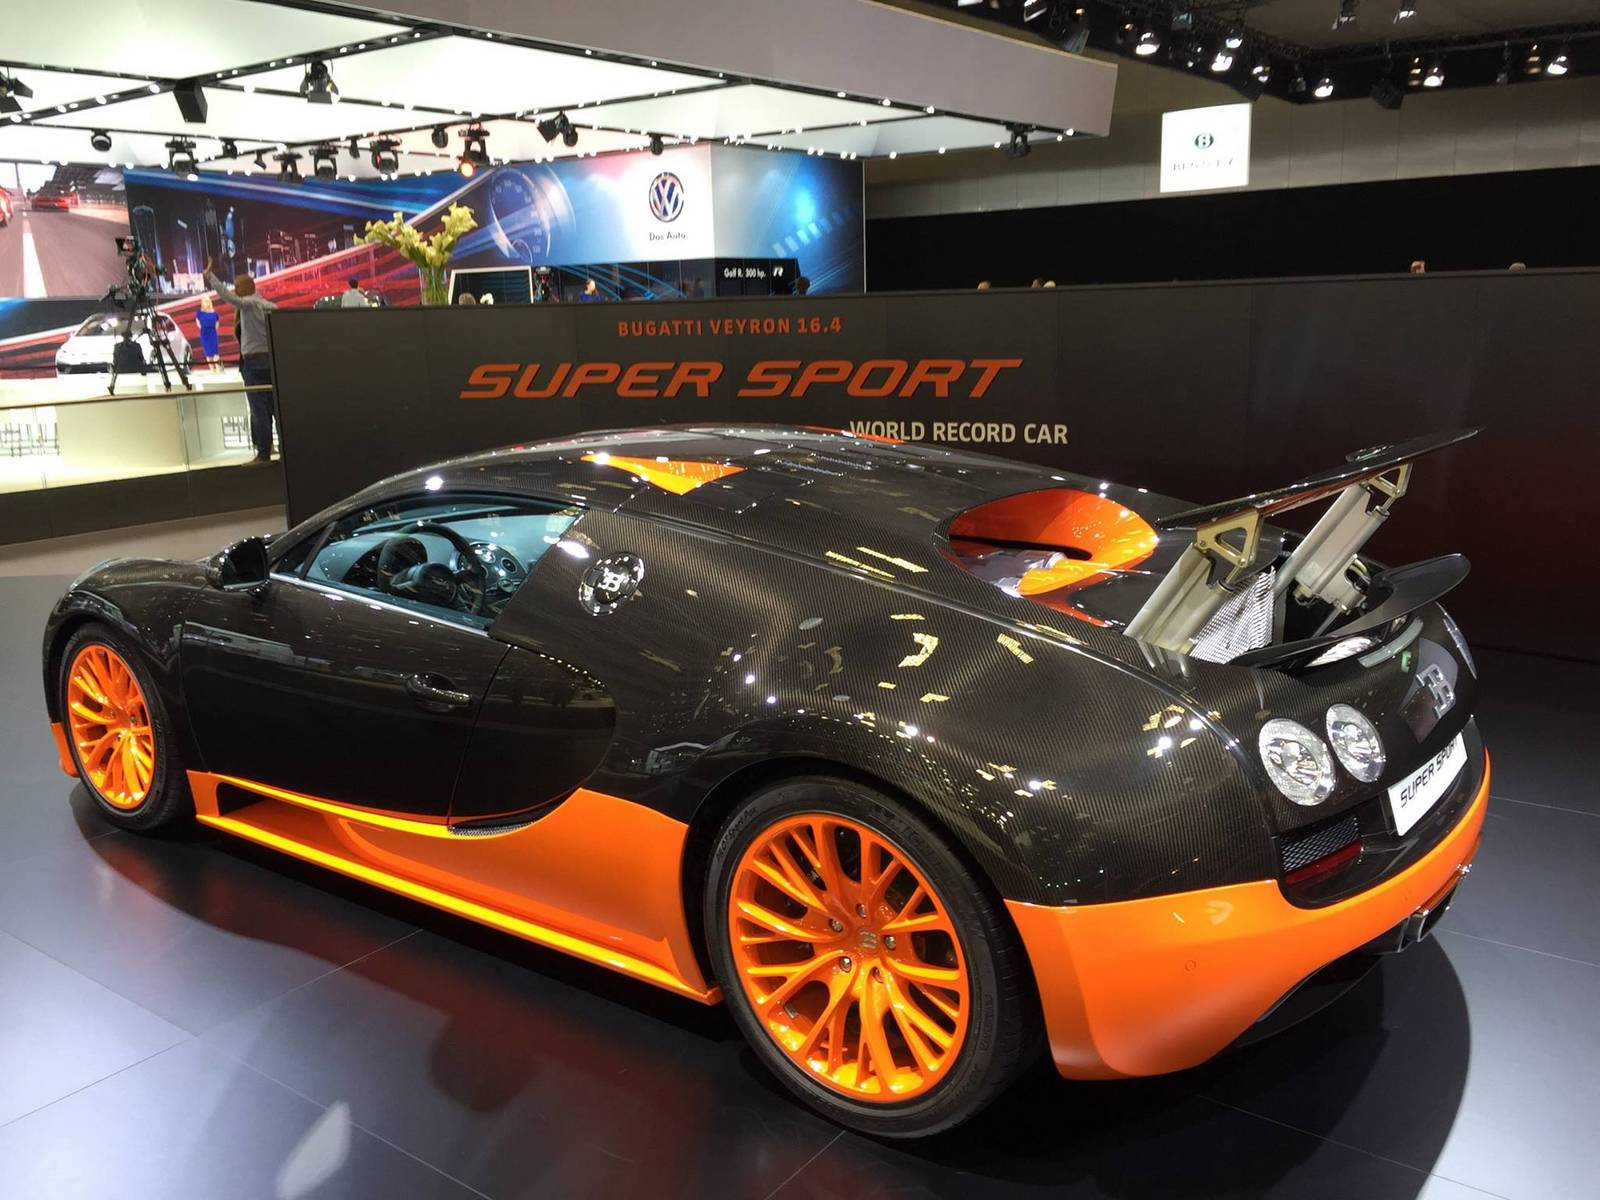 bugatti veyron super sport wrc stars at qatar motor show. Black Bedroom Furniture Sets. Home Design Ideas